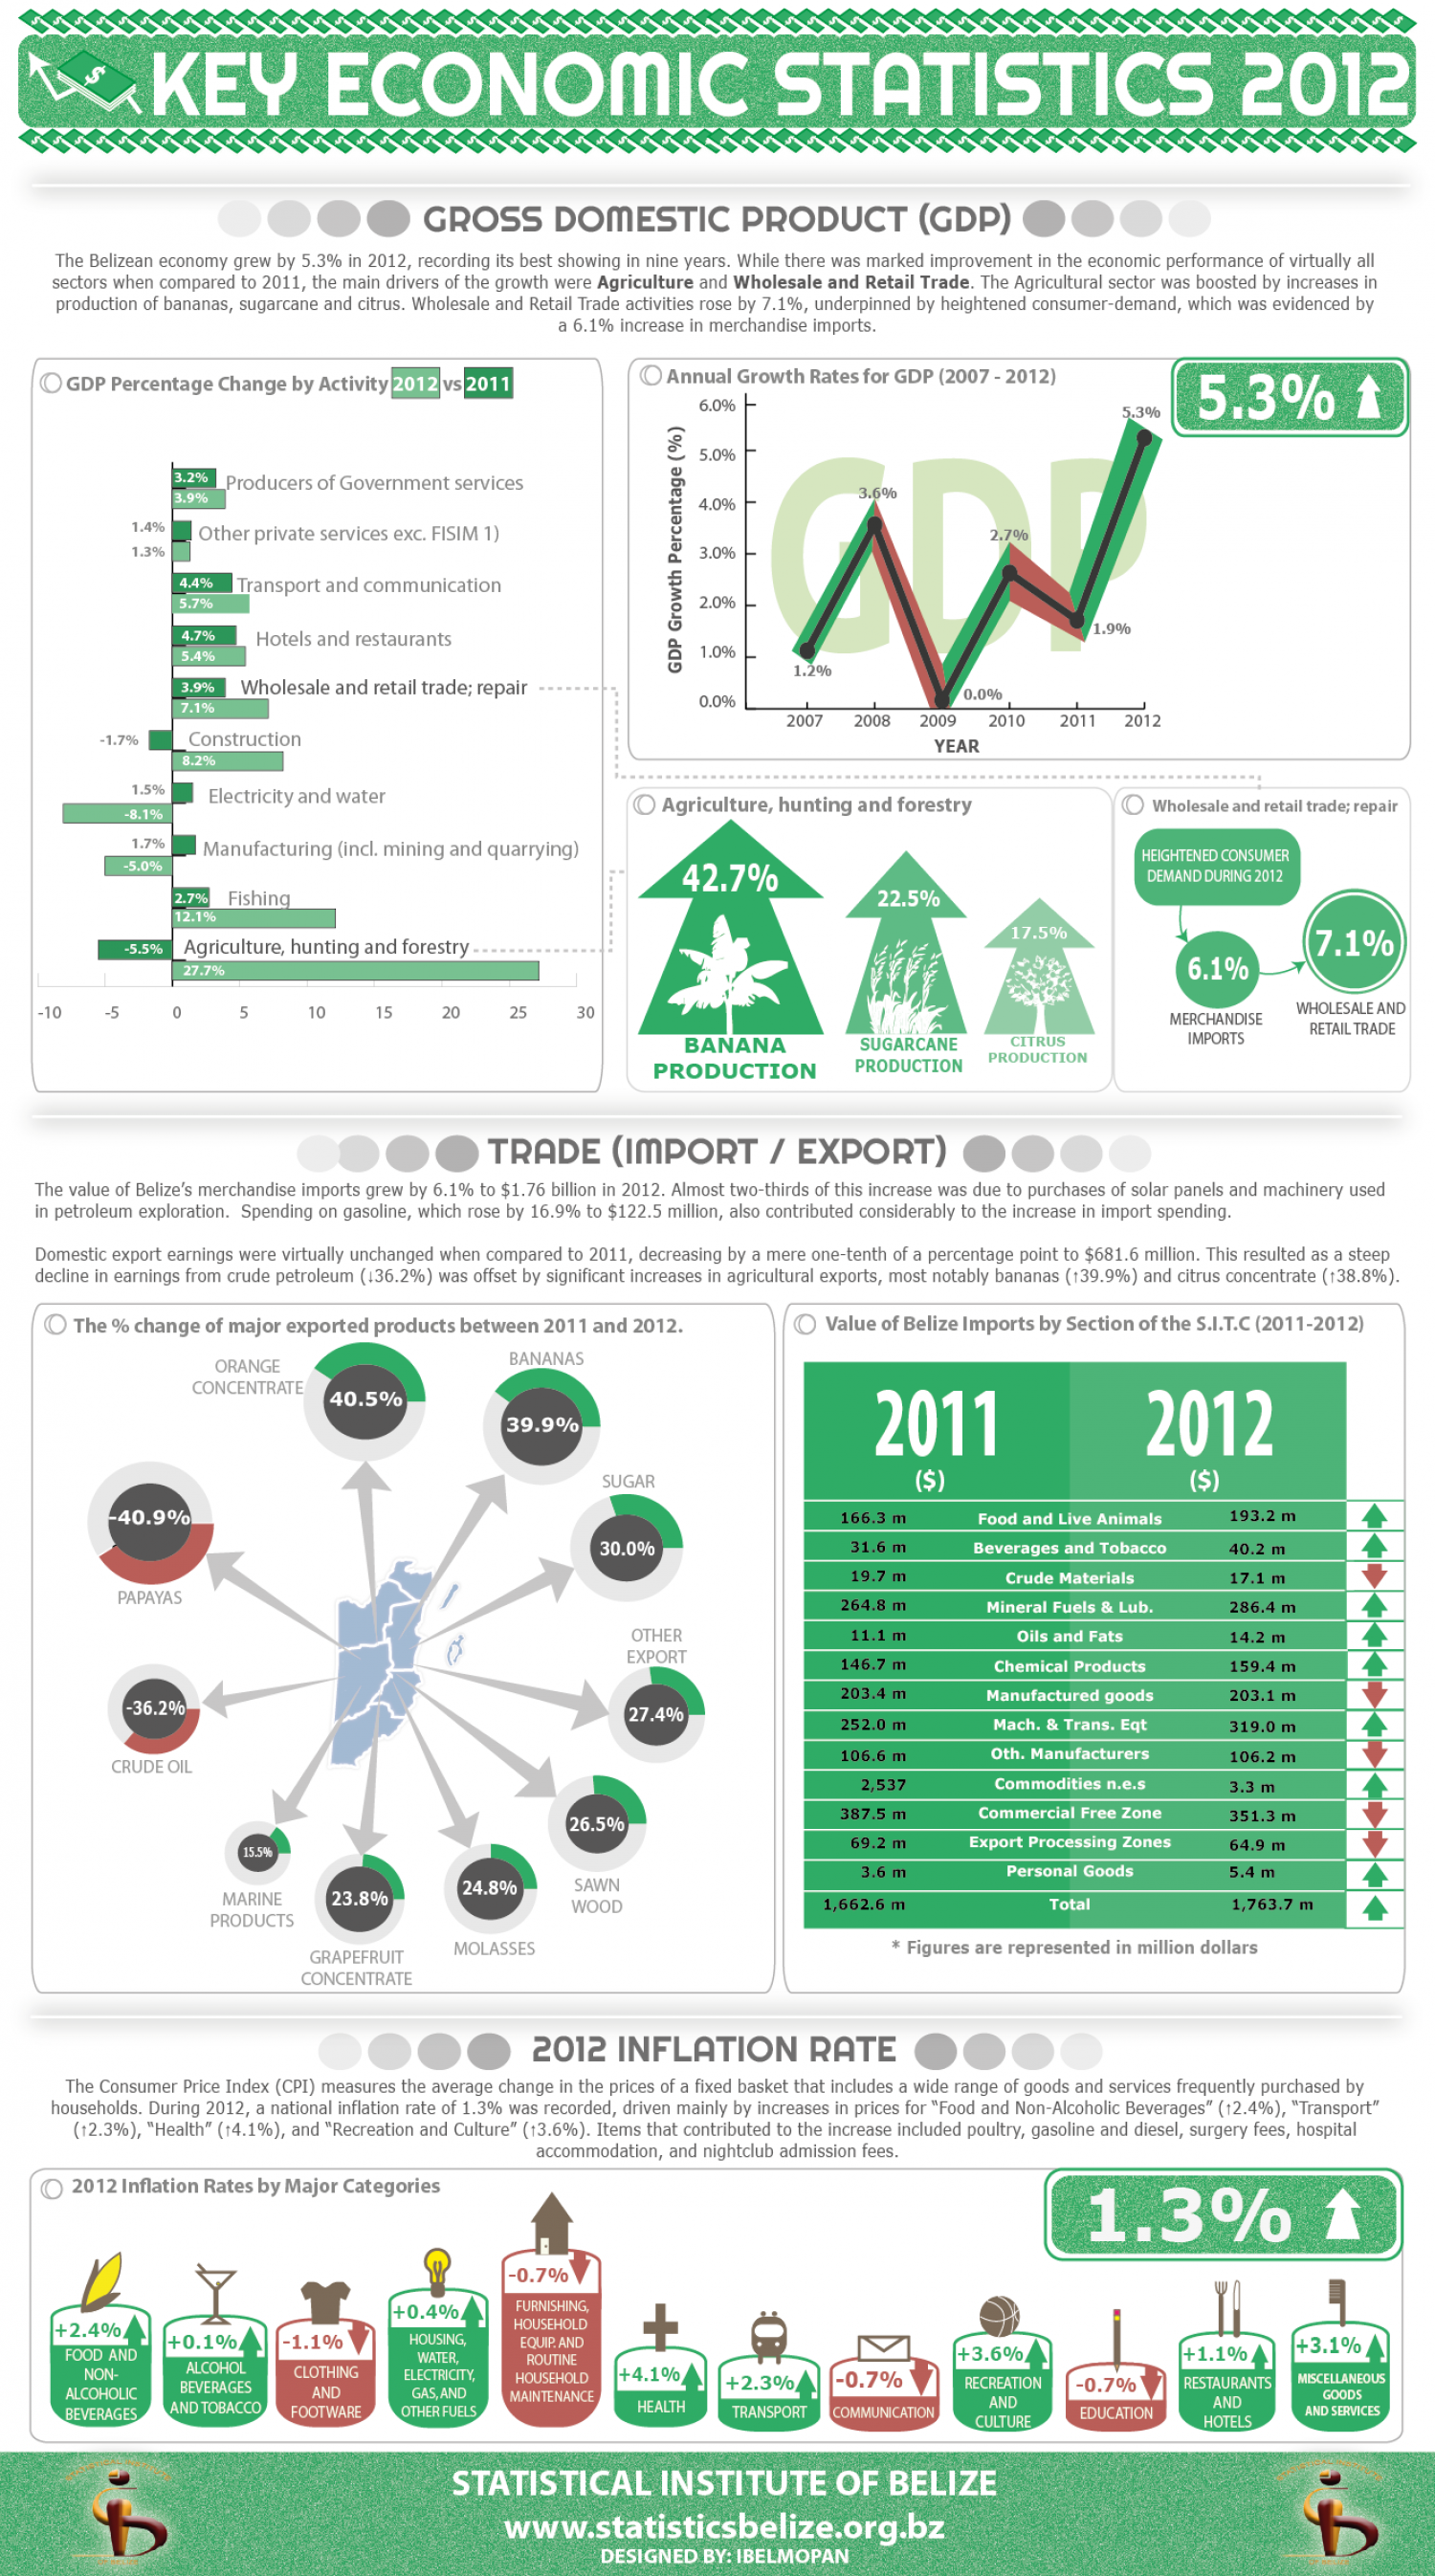 Belize Key Economic Statistics 2012 Infographic